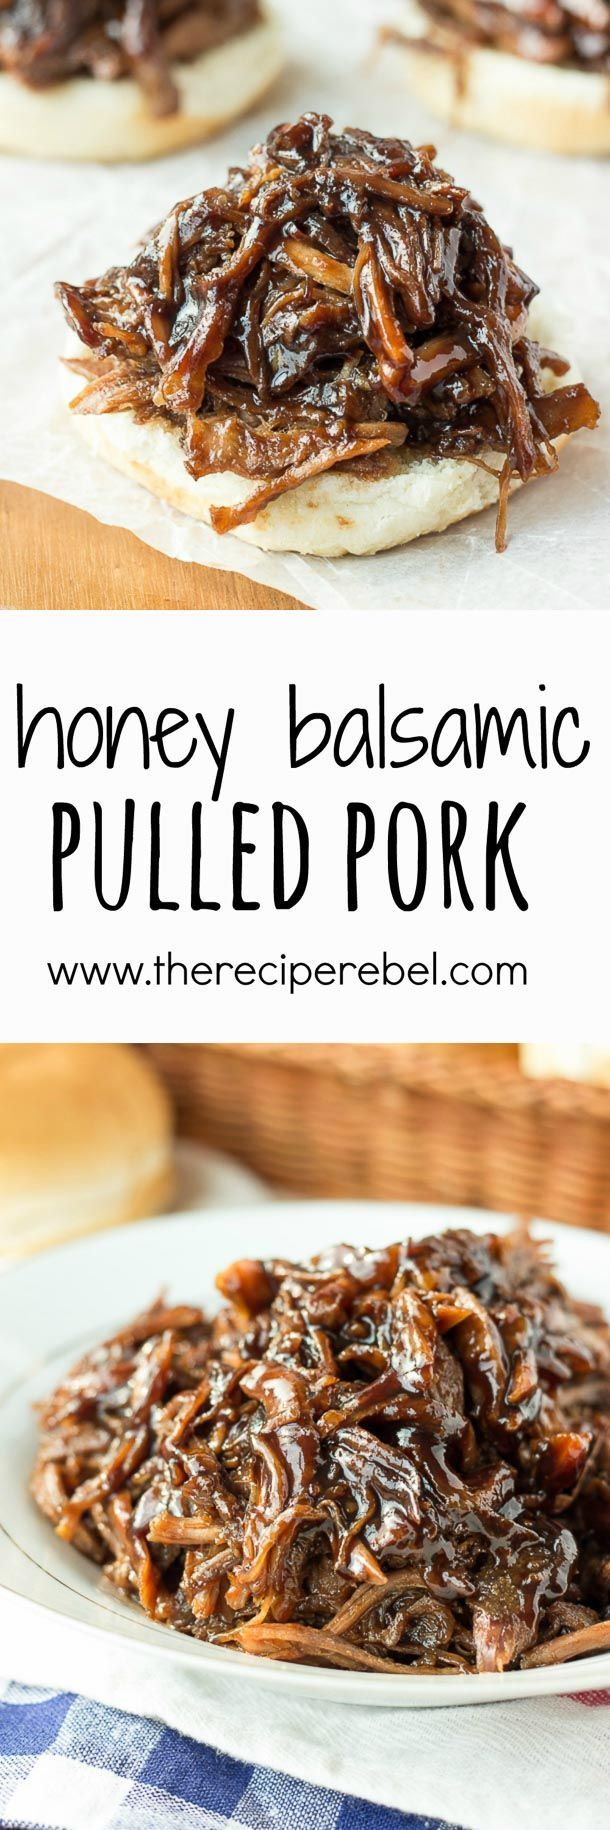 Slow Cooker Honey Balsamic Pulled Pork: Incredible thick, sweet and tangy honey balsamic sauce over slow-cooked pulled pork -- my absolute favorite way to do pulled pork! Perfect crockpot meal for summer or a busy weeknight! www.thereciperebe...